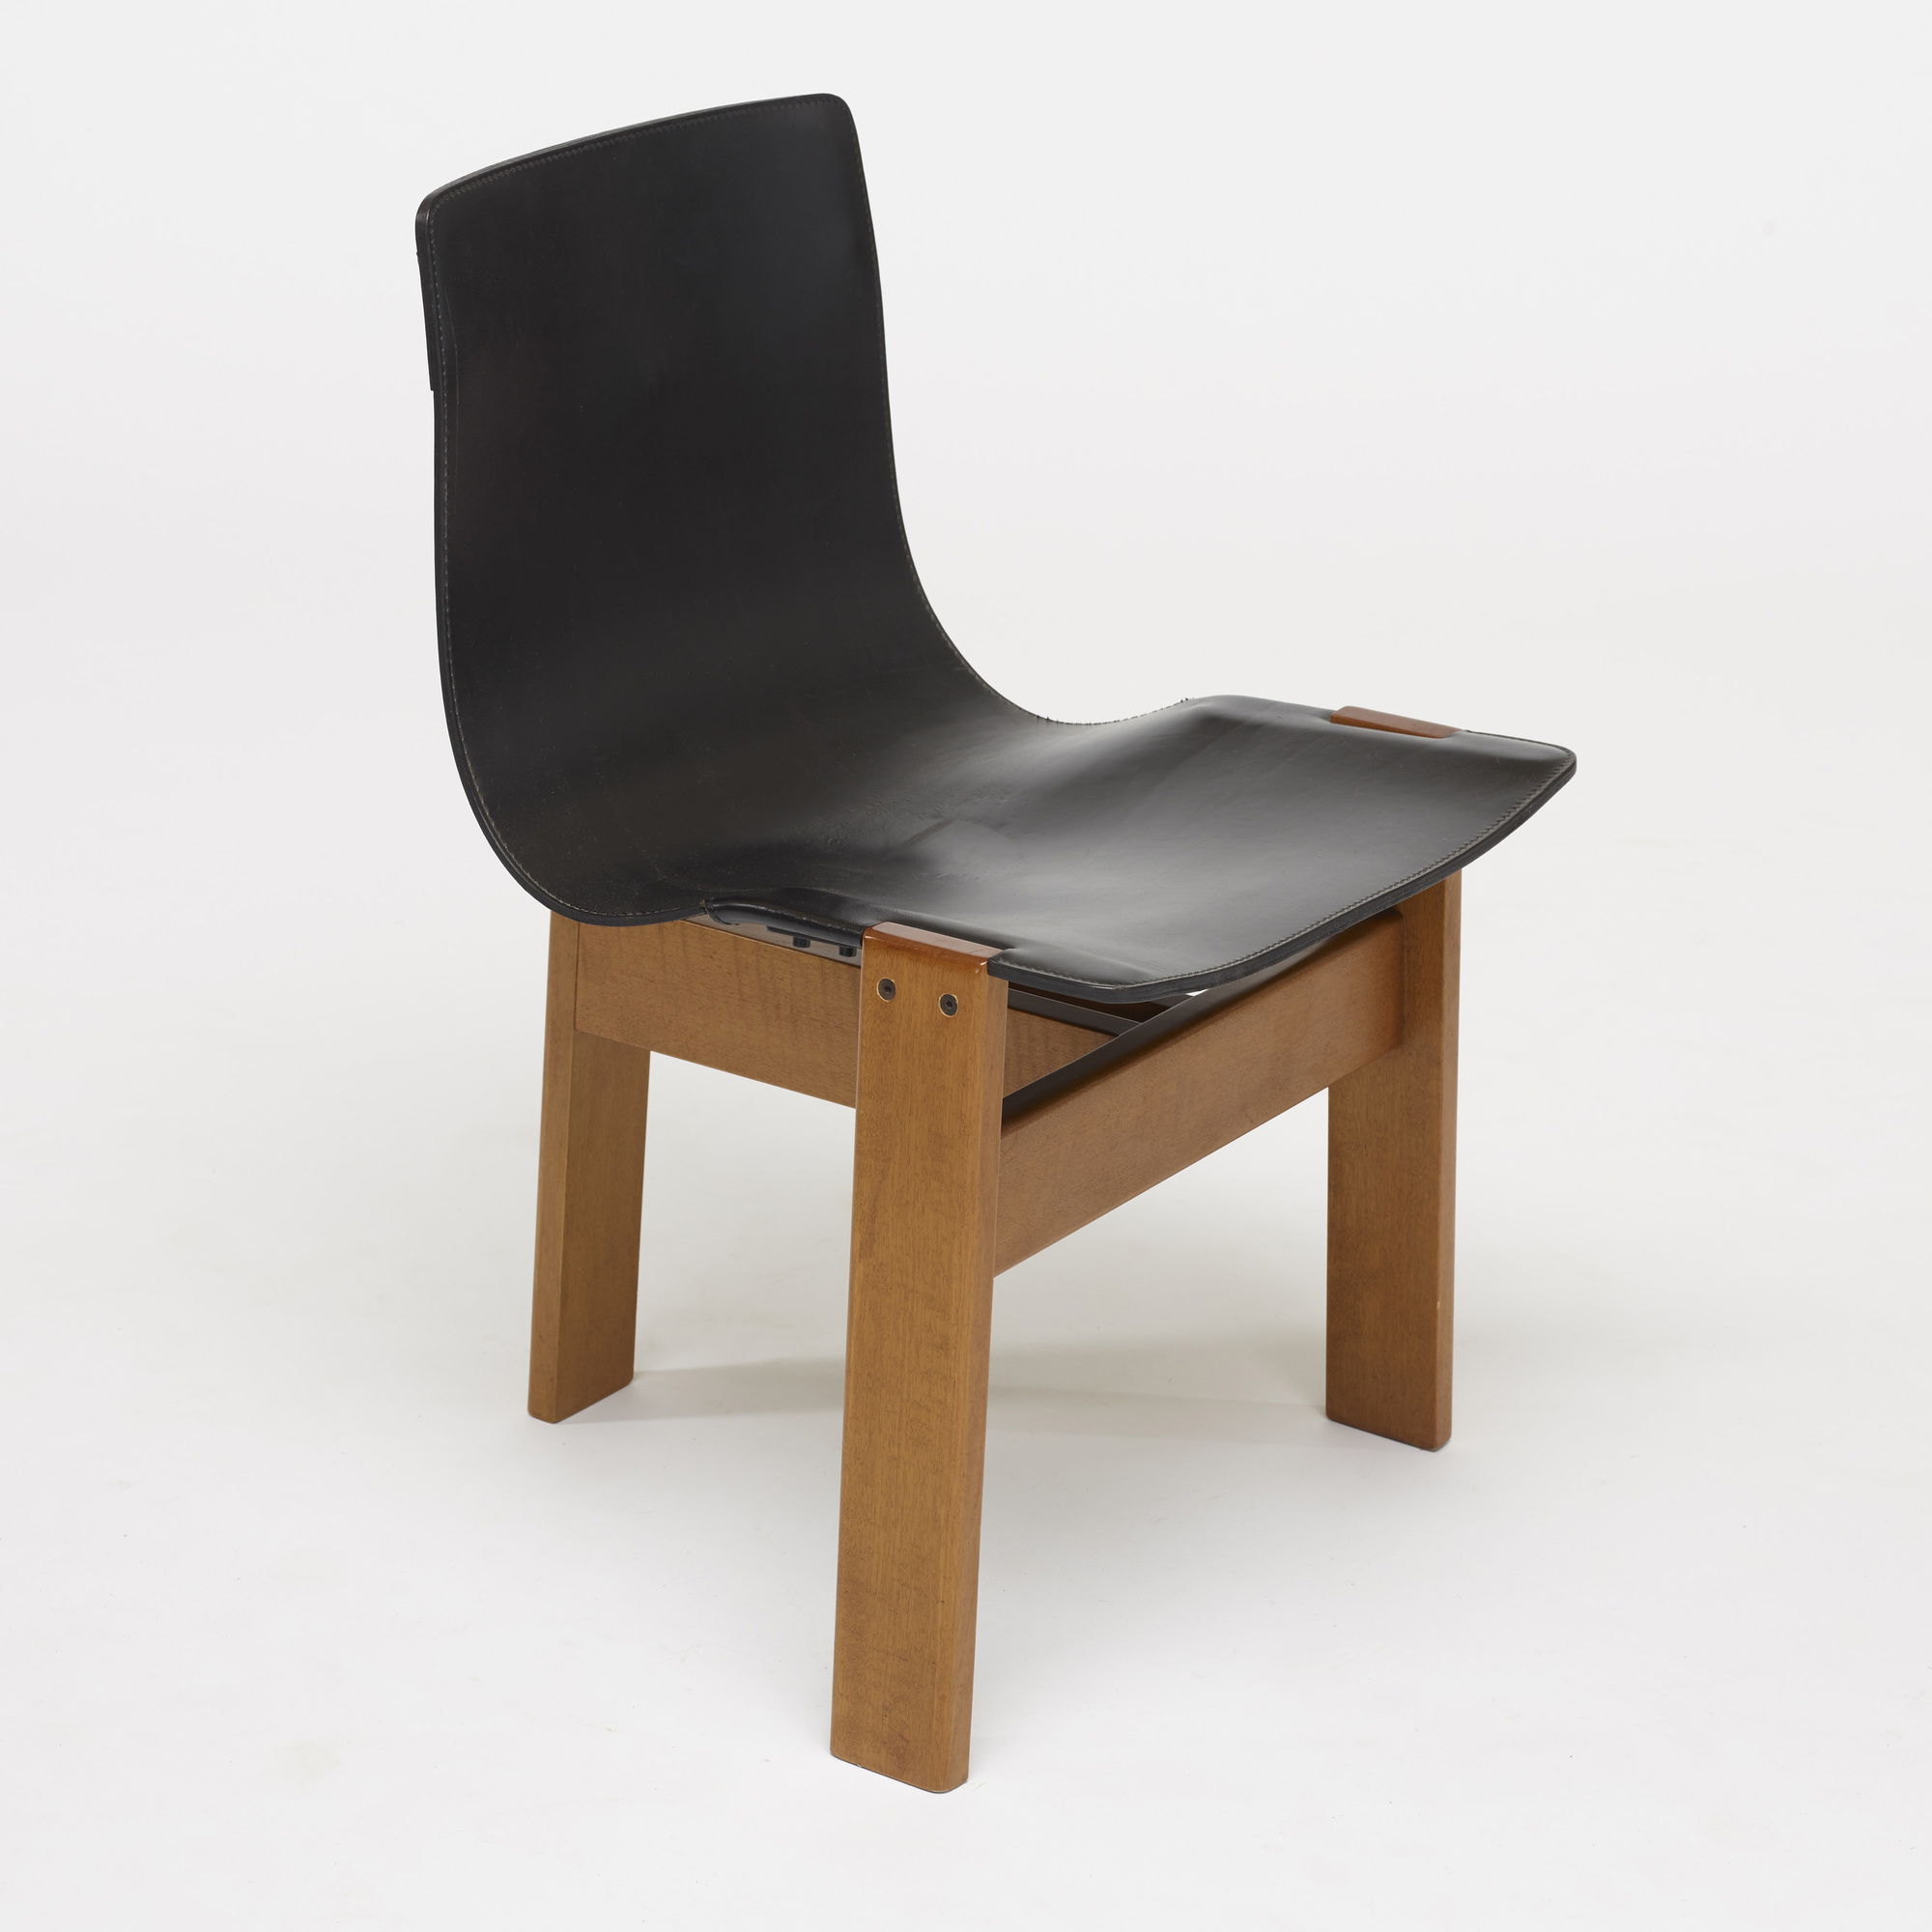 527: Angelo Mangiarotti / Tre 3 dining chair (3 of 3)